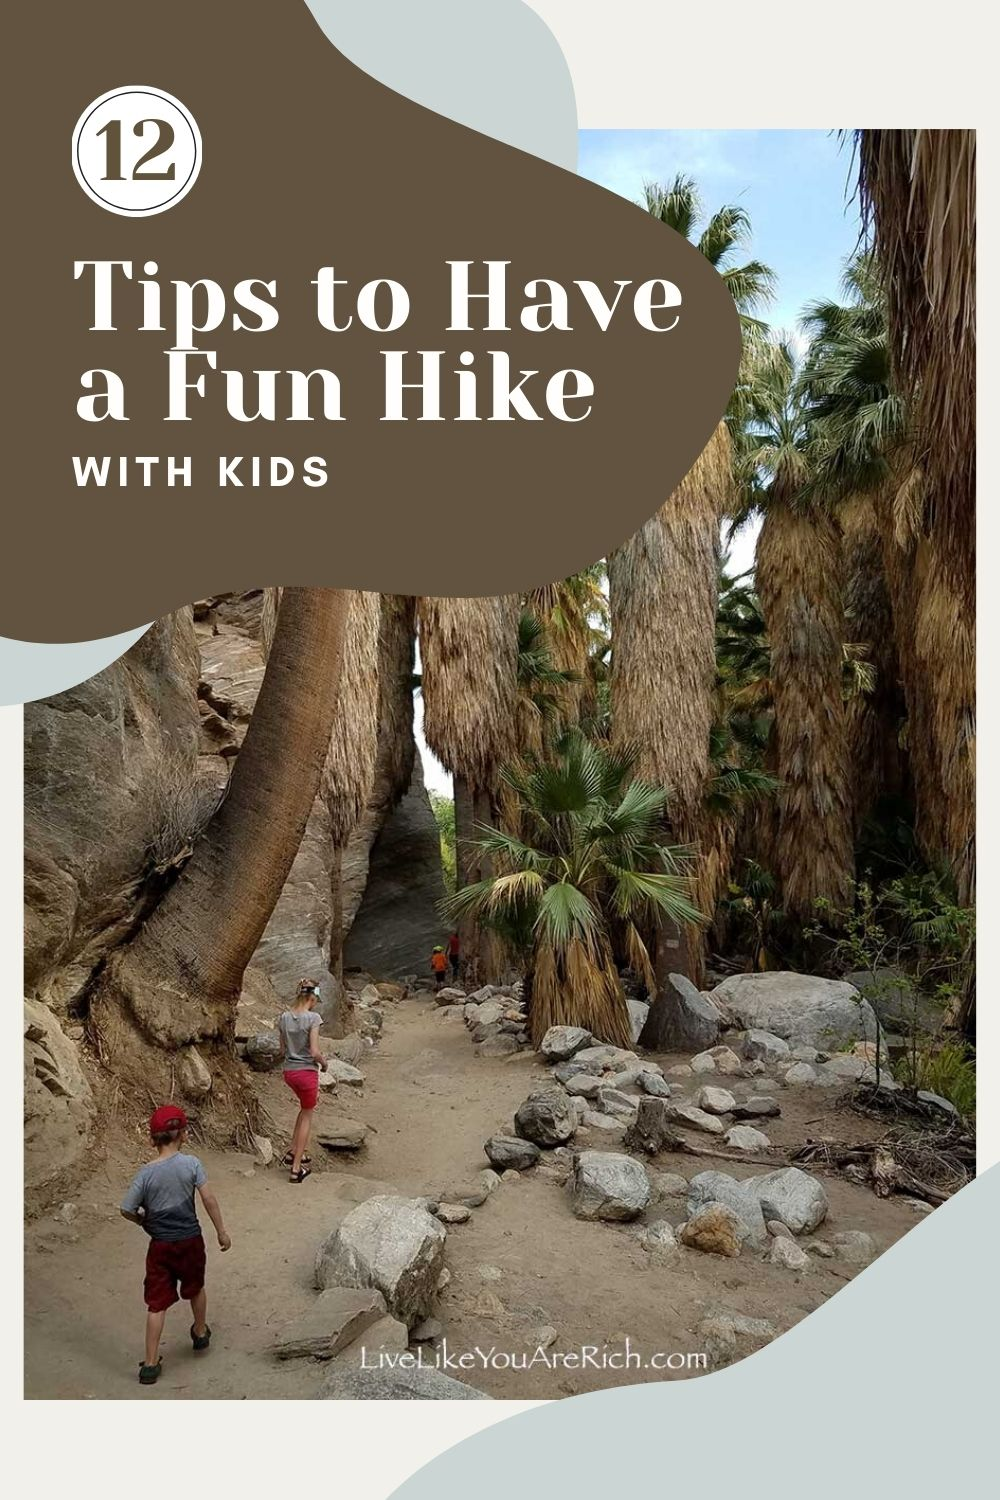 I am always looking for fun things/ activities to do with my kids to keep them active and happy without spending a fortune. I've found that hiking is an awesome way to do that! Here are 12 great tips for hiking with kids shared by my friend, an avid hiker.